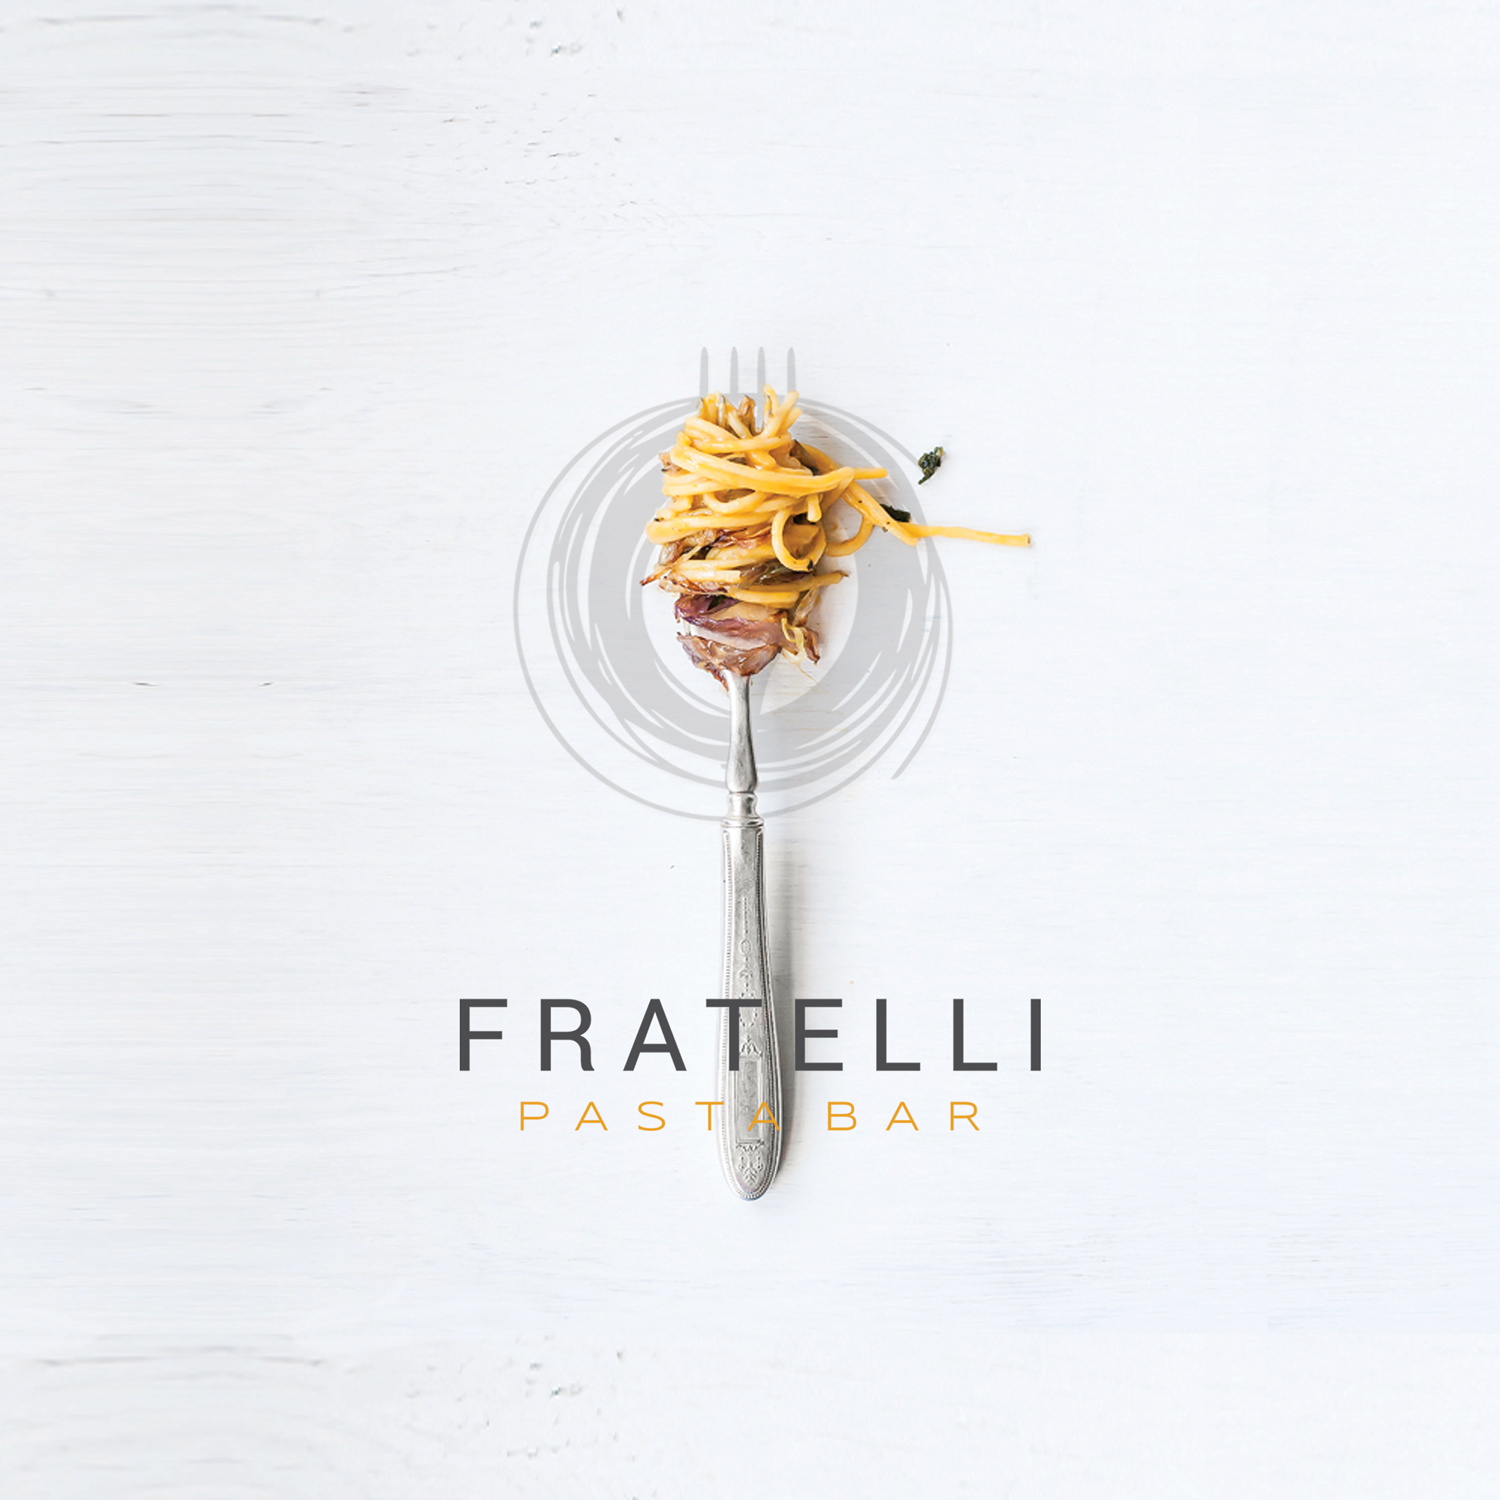 Join the Fratelli Pasta Bar team and create a chic and sophisticated logo!